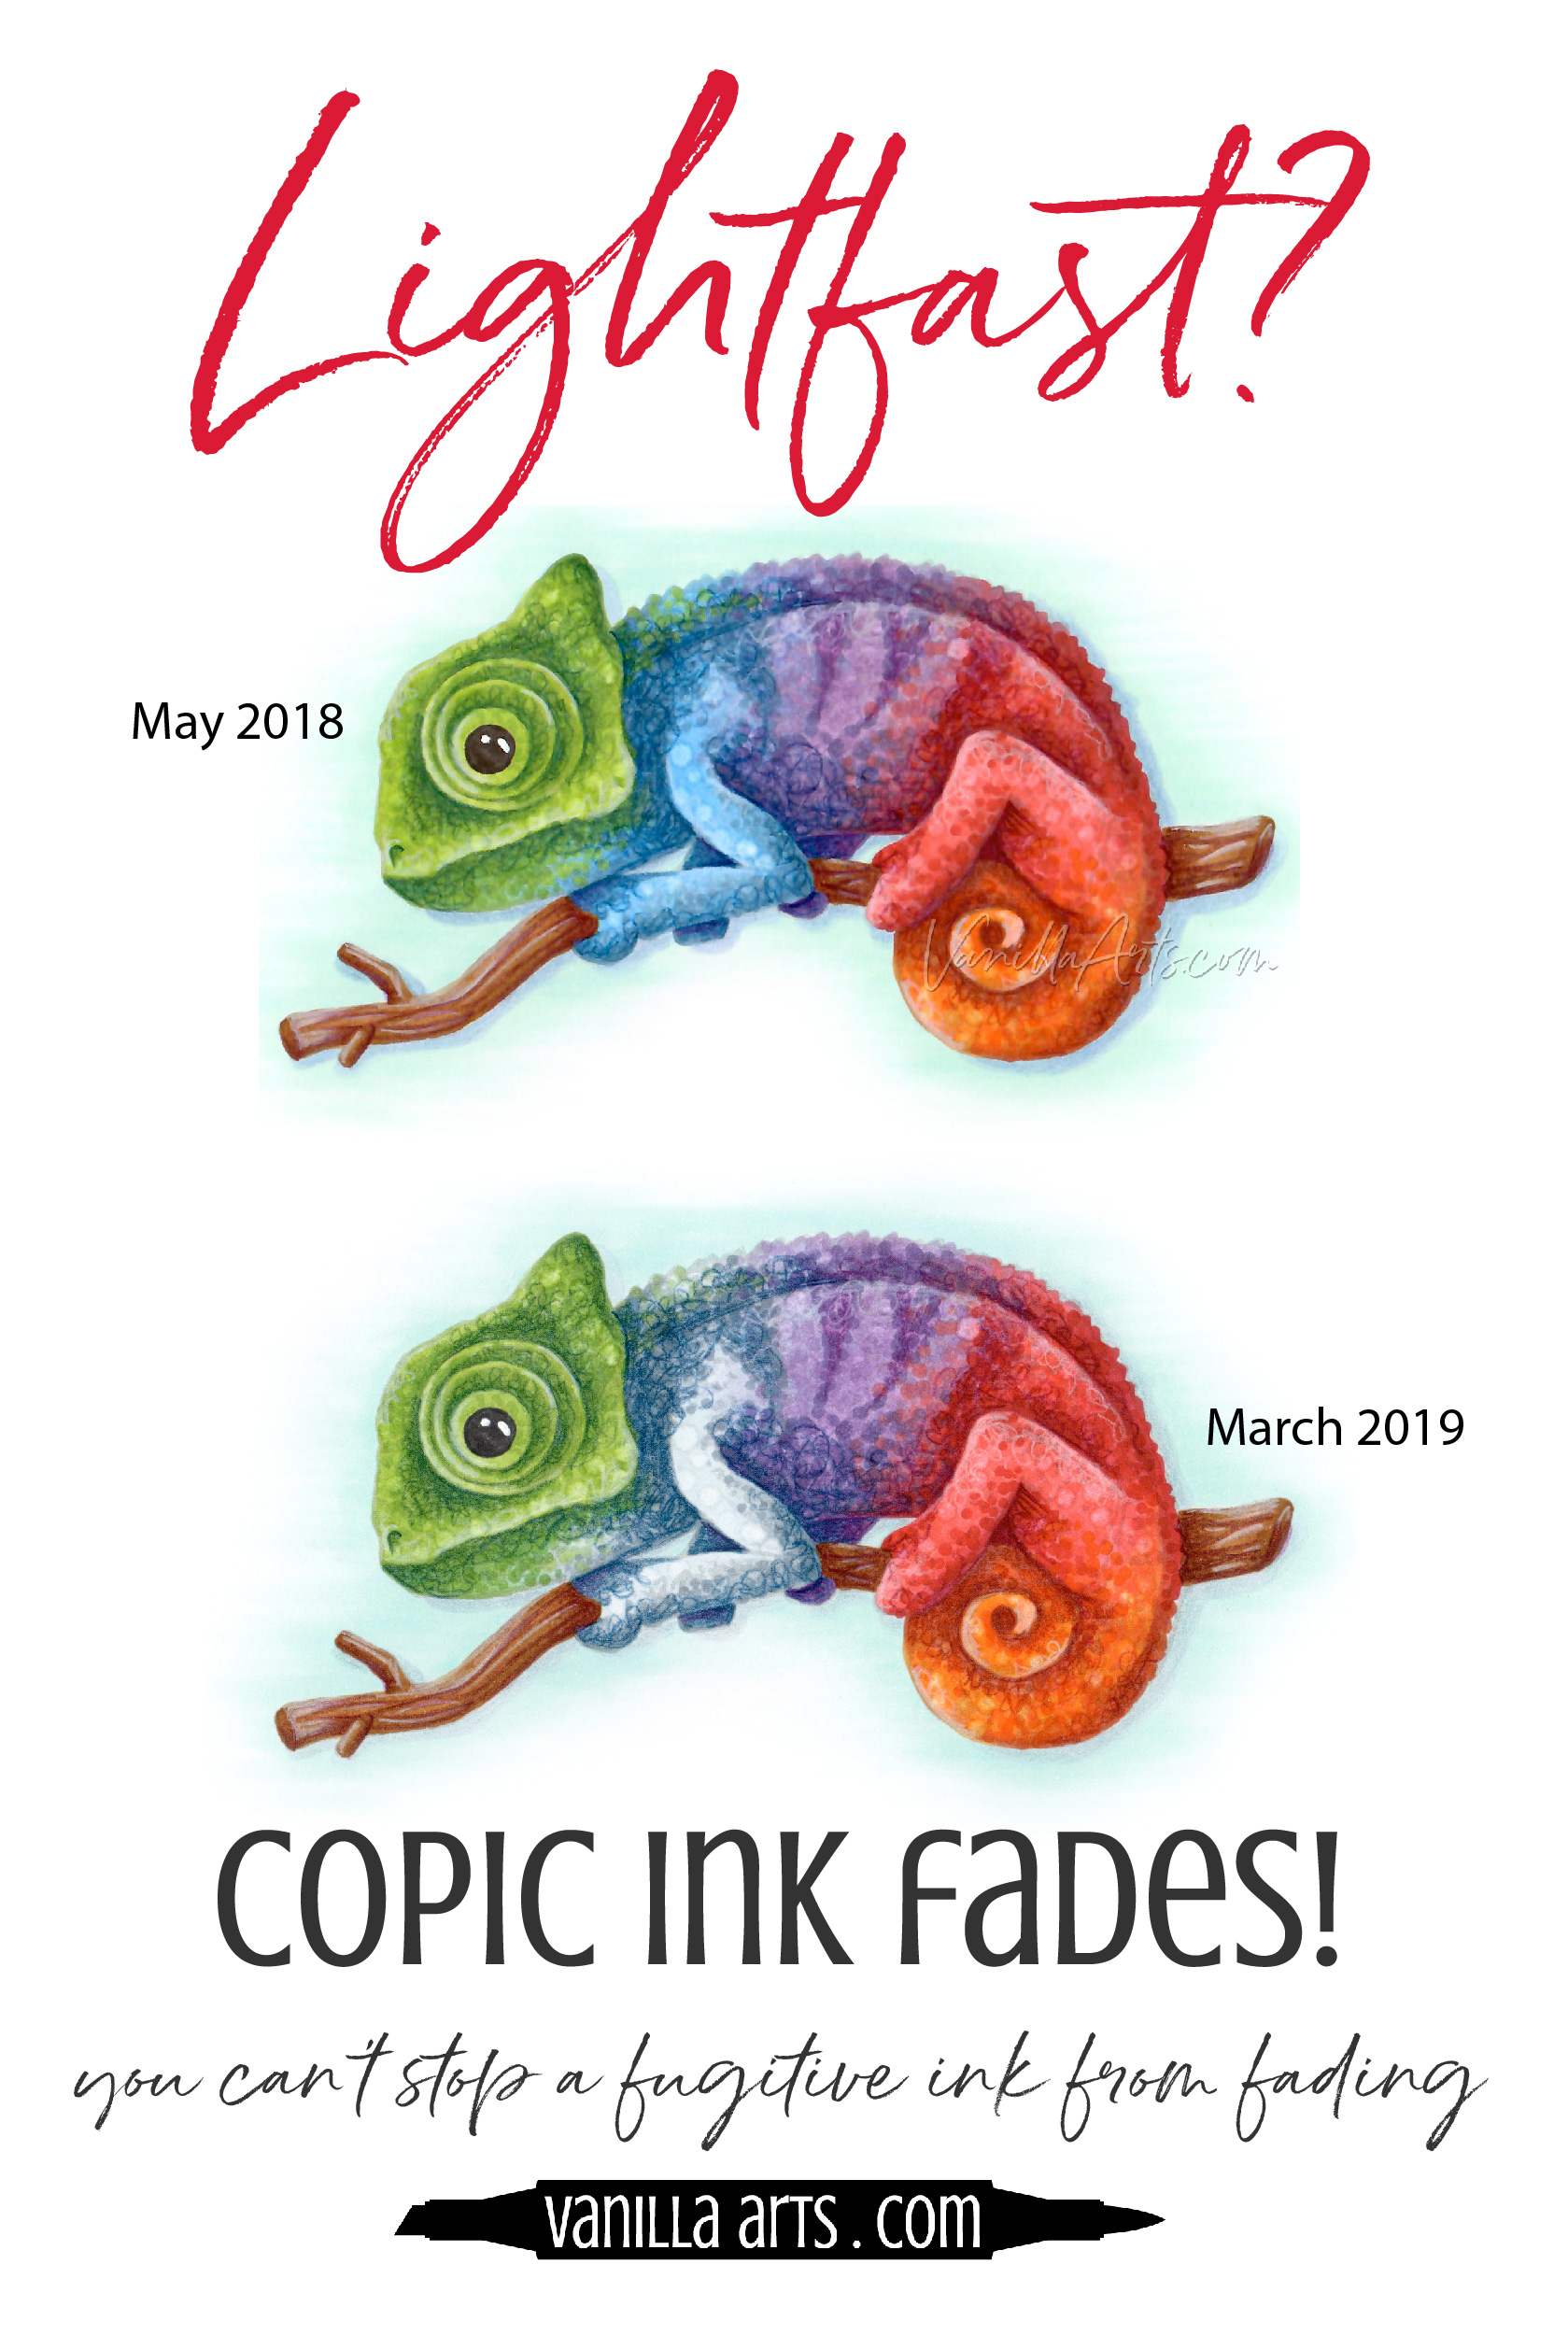 Copic Marker ink is NOT lightfast! Your projects will fade in as little as 6 months. Learn how to preserve your beautiful coloring projects. | VanillaArts.com | #copic #adultcoloring #howtocolor